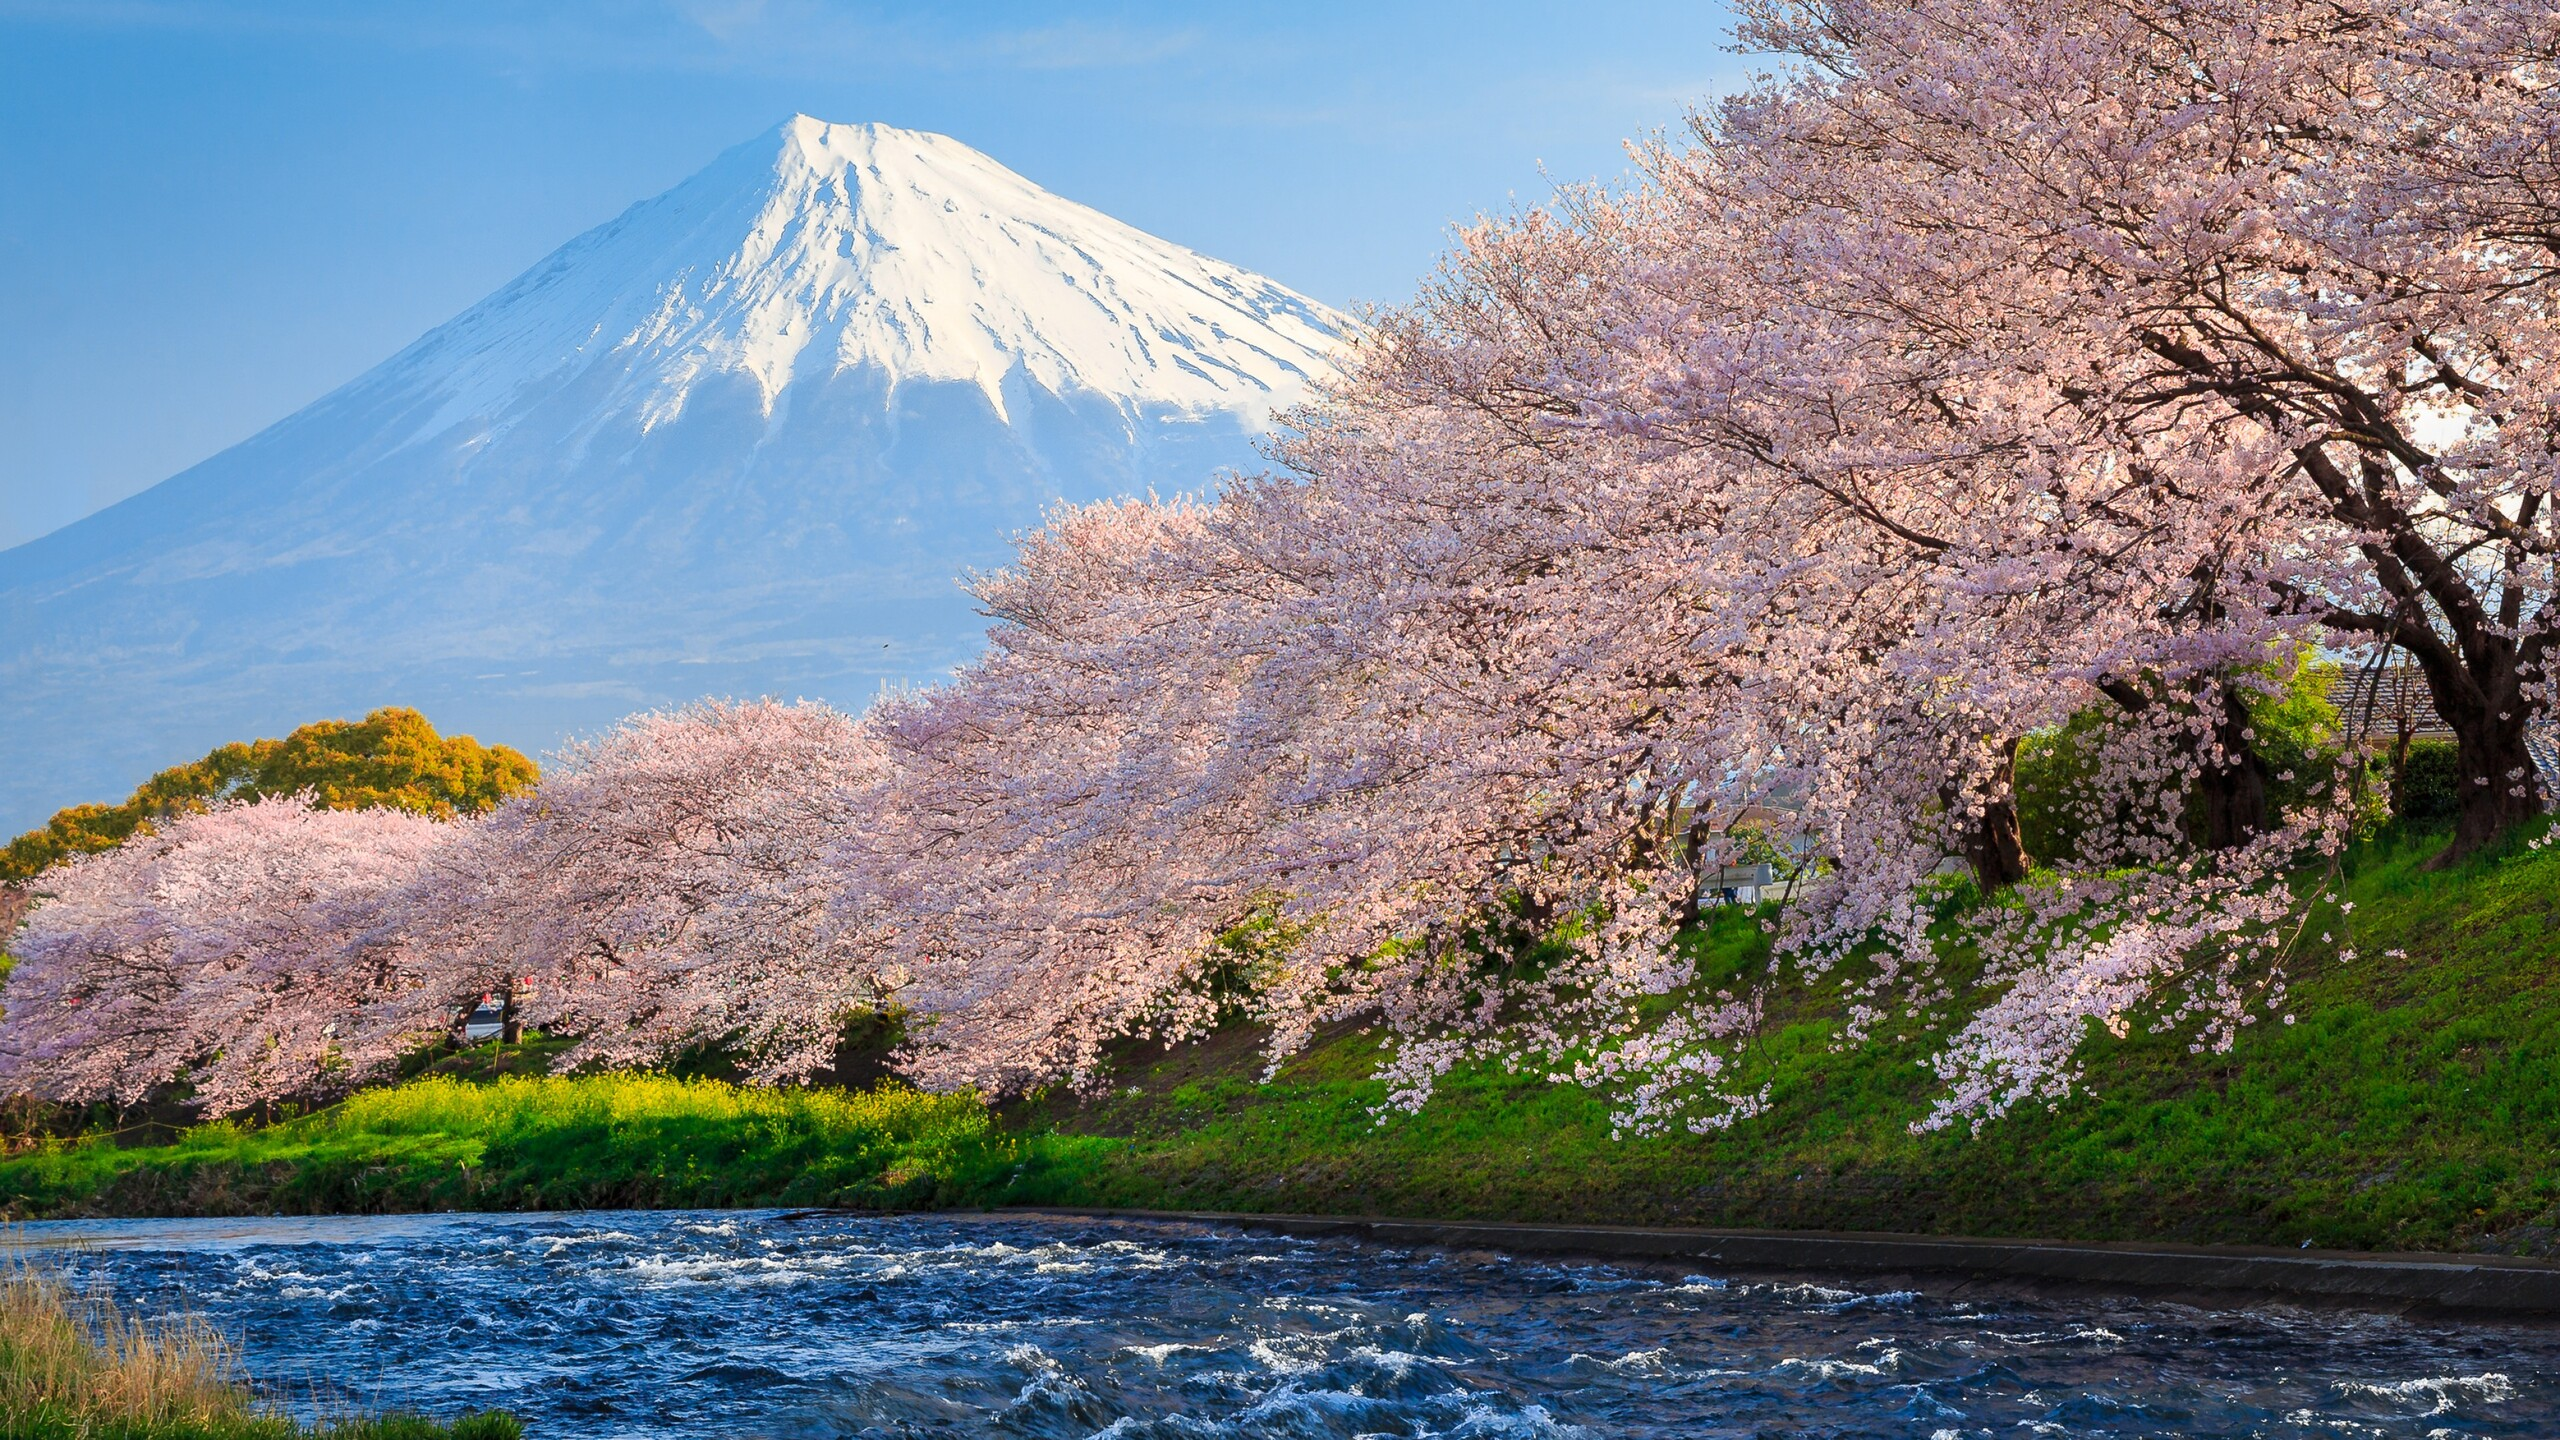 2560x1440 Sakura River Japan 1440p Resolution Hd 4k Wallpapers